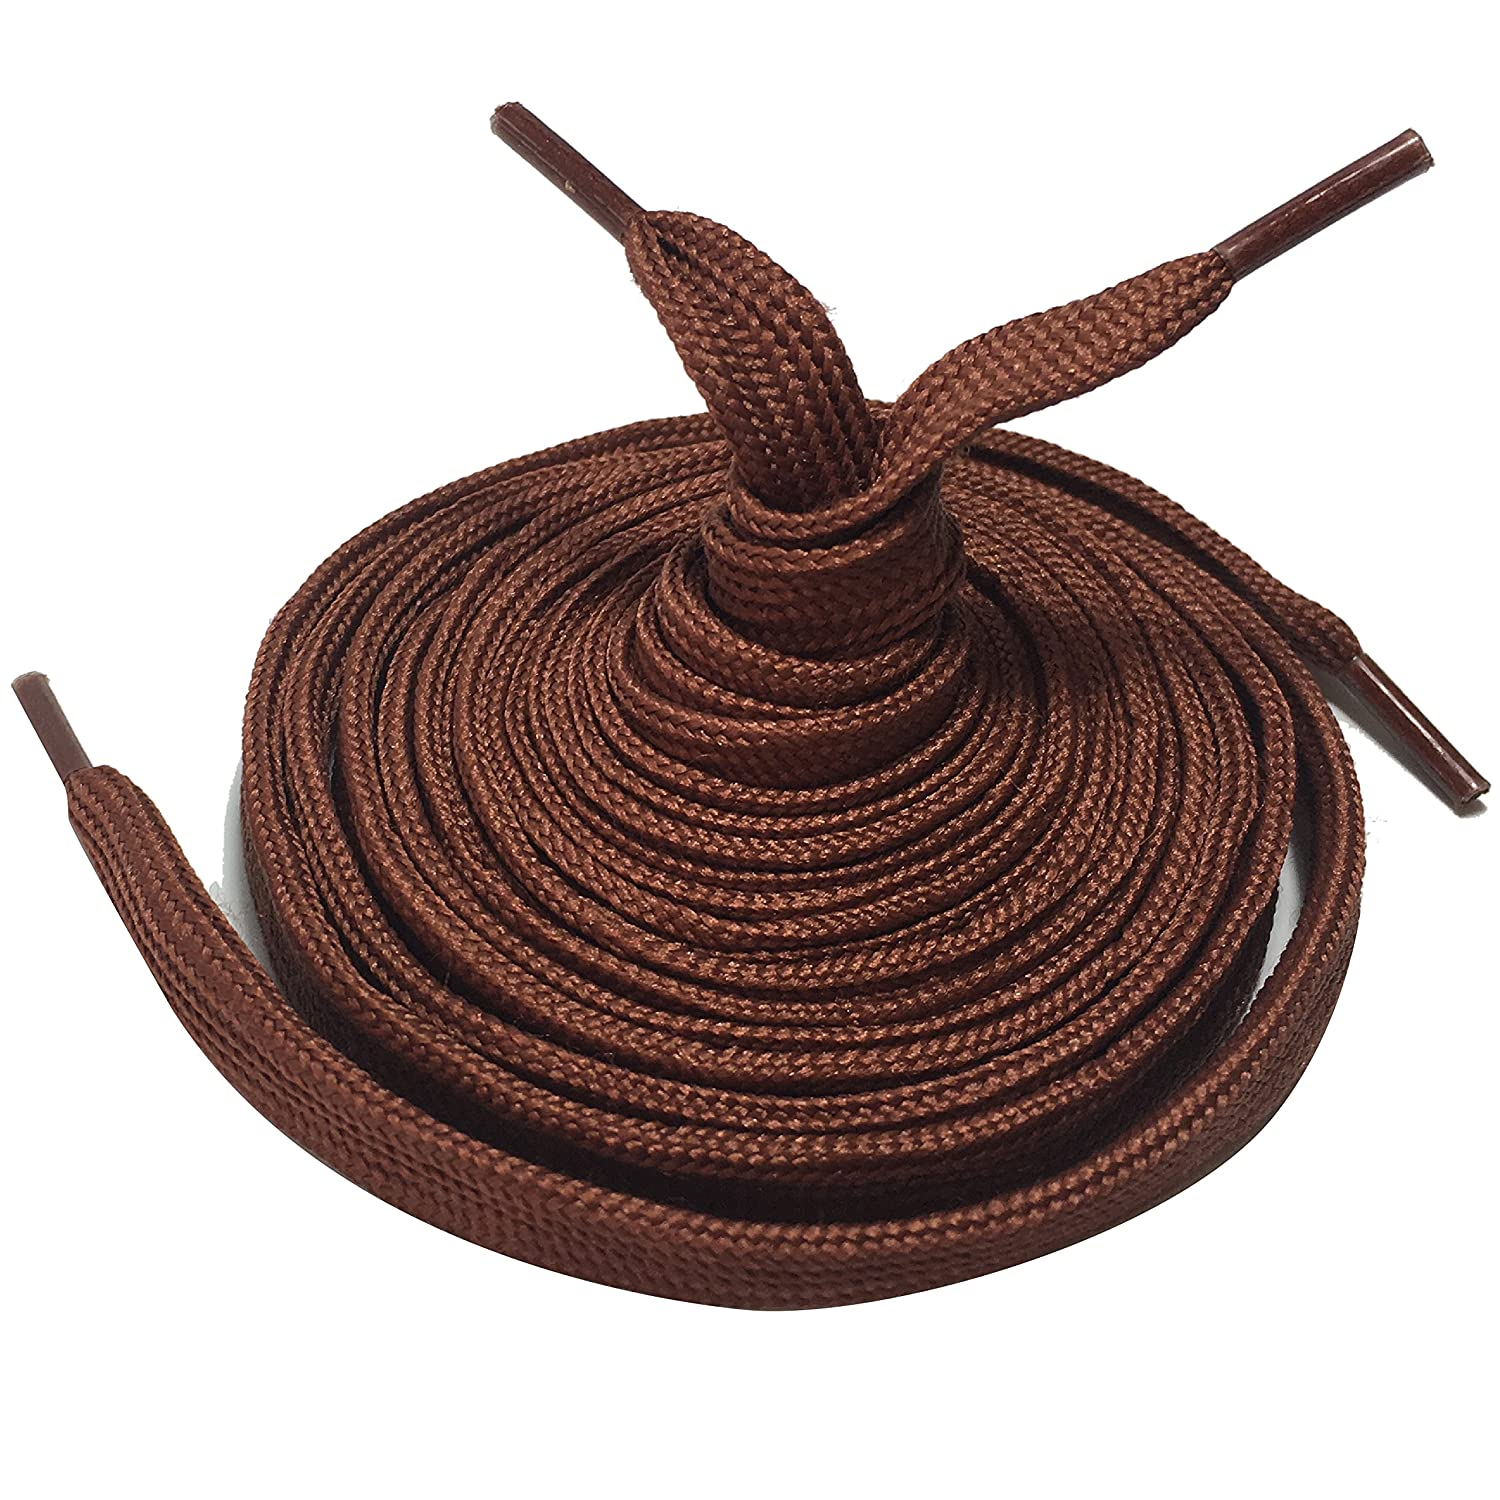 2 Pairs of Shoe Laces Boot Shoelaces. Round or Flat, 75cm to 210cm lengths